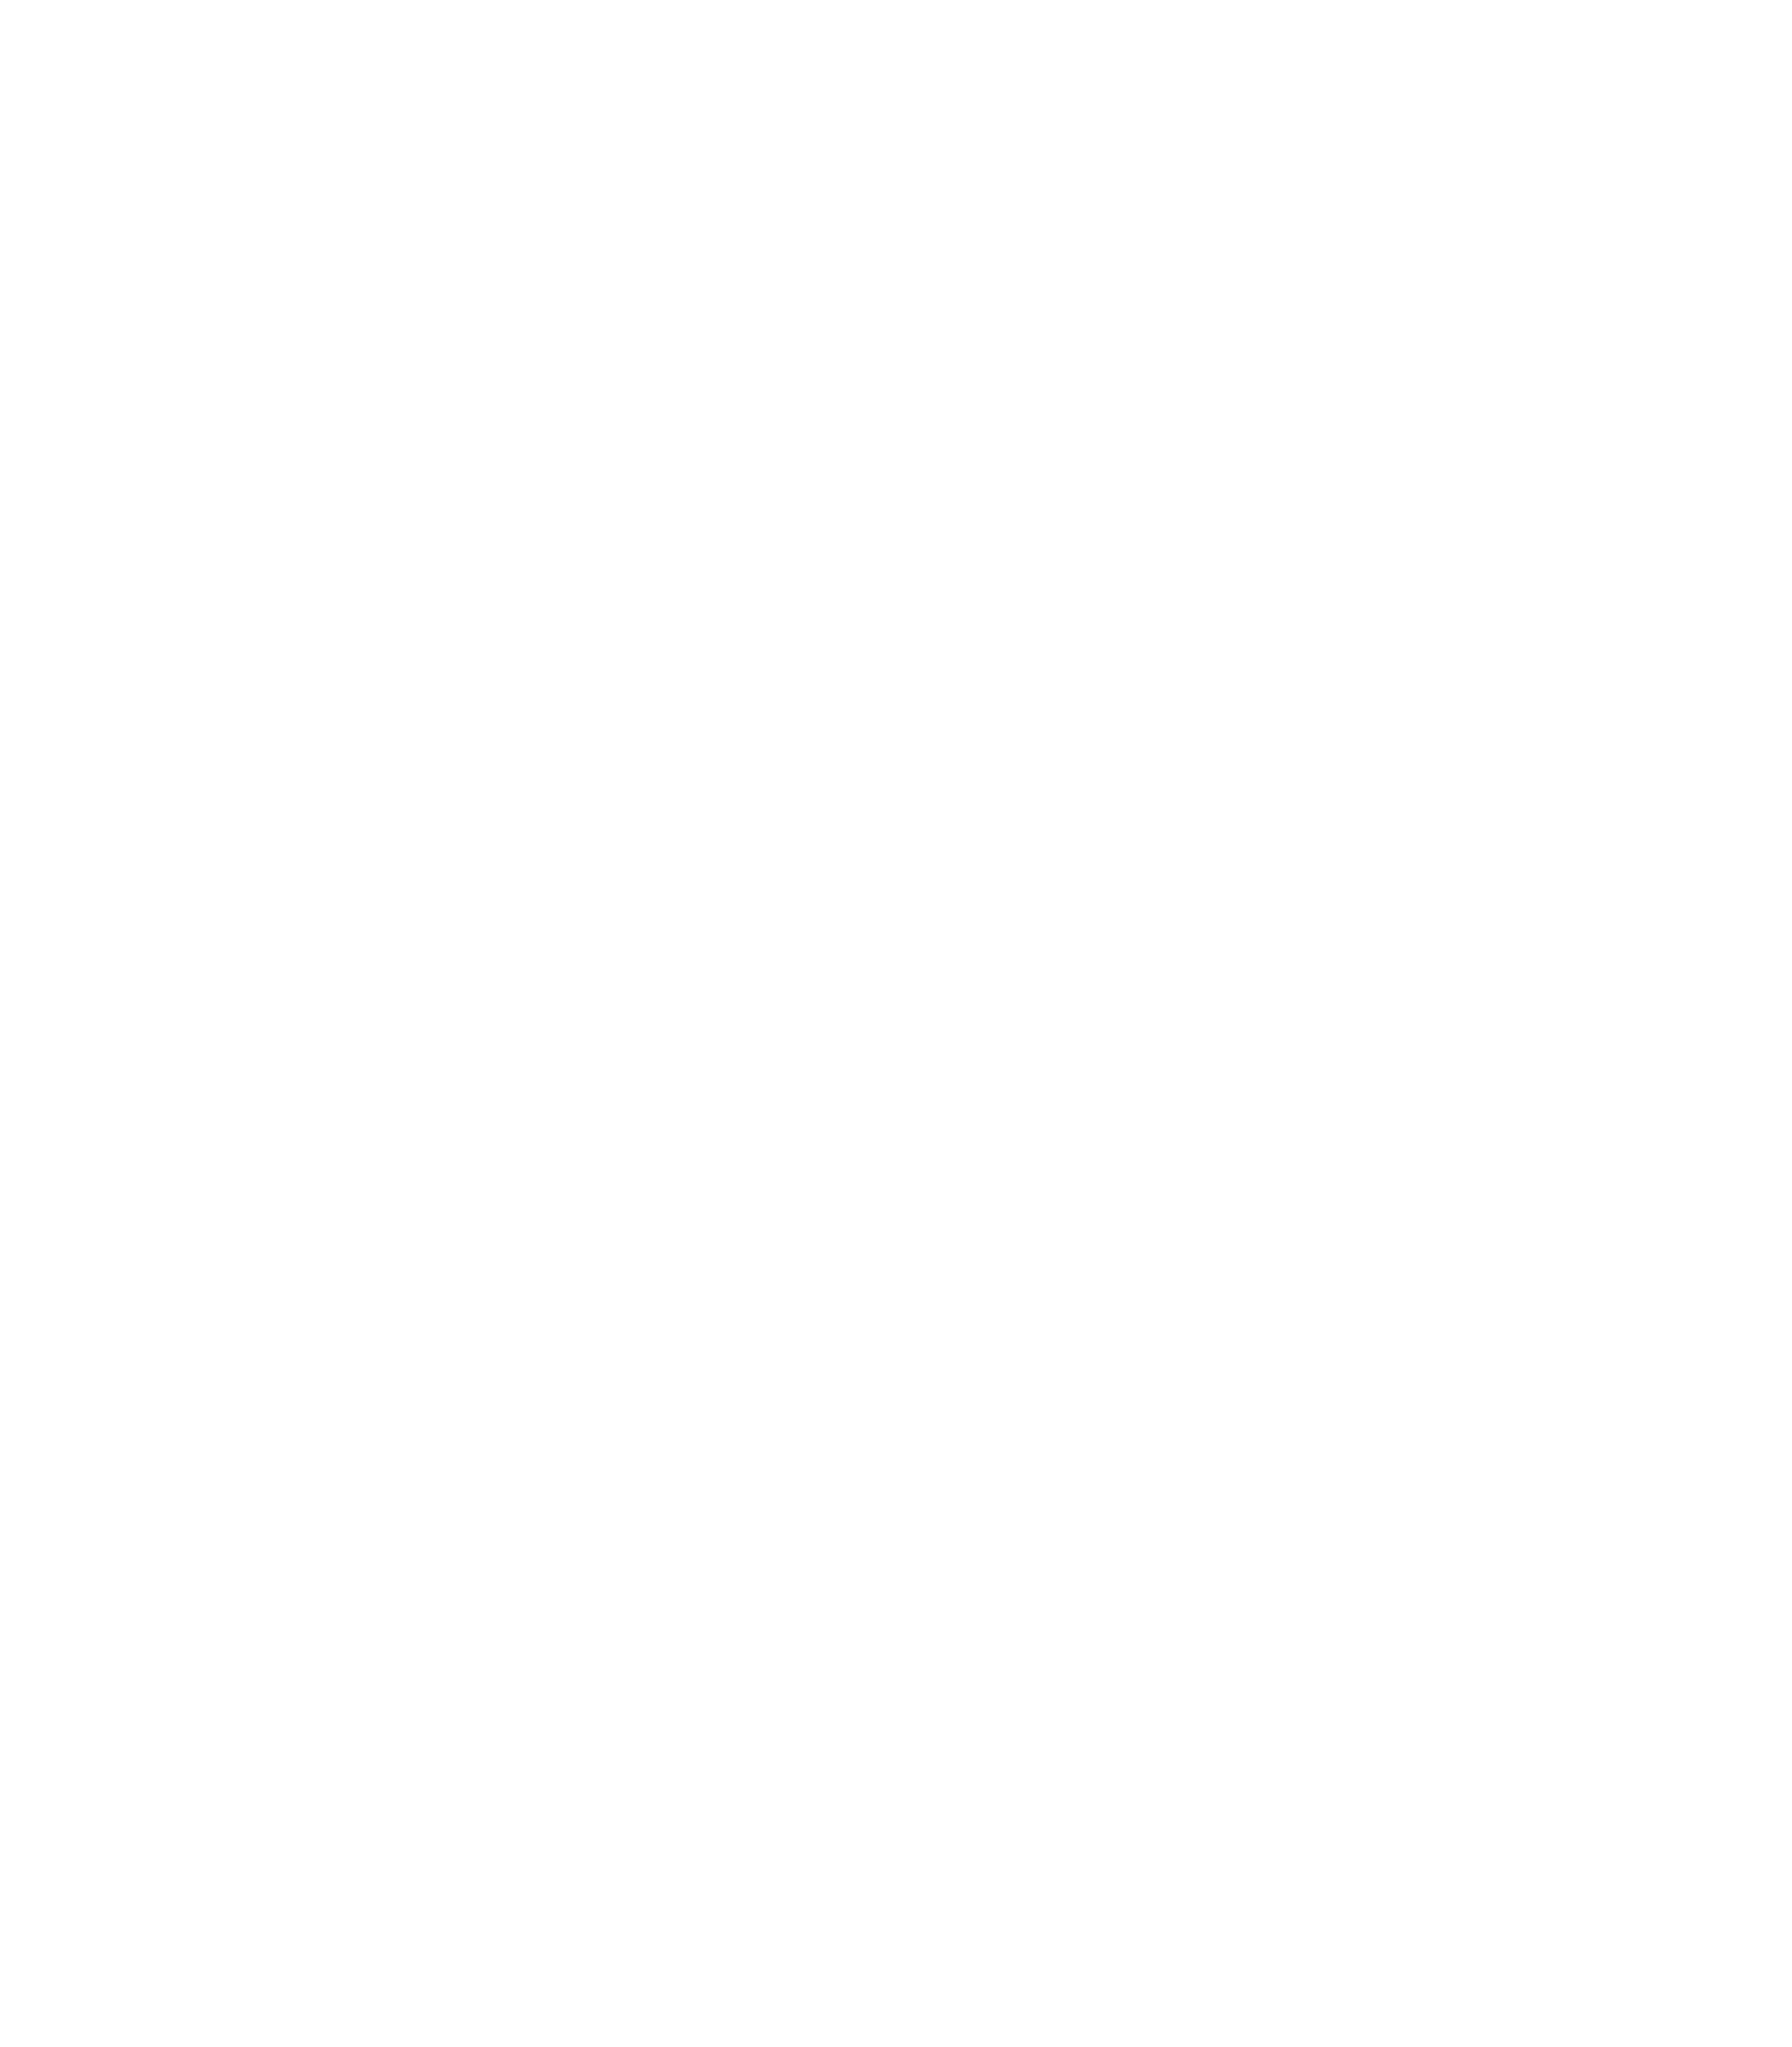 Bangalore Equitation Academy Demo